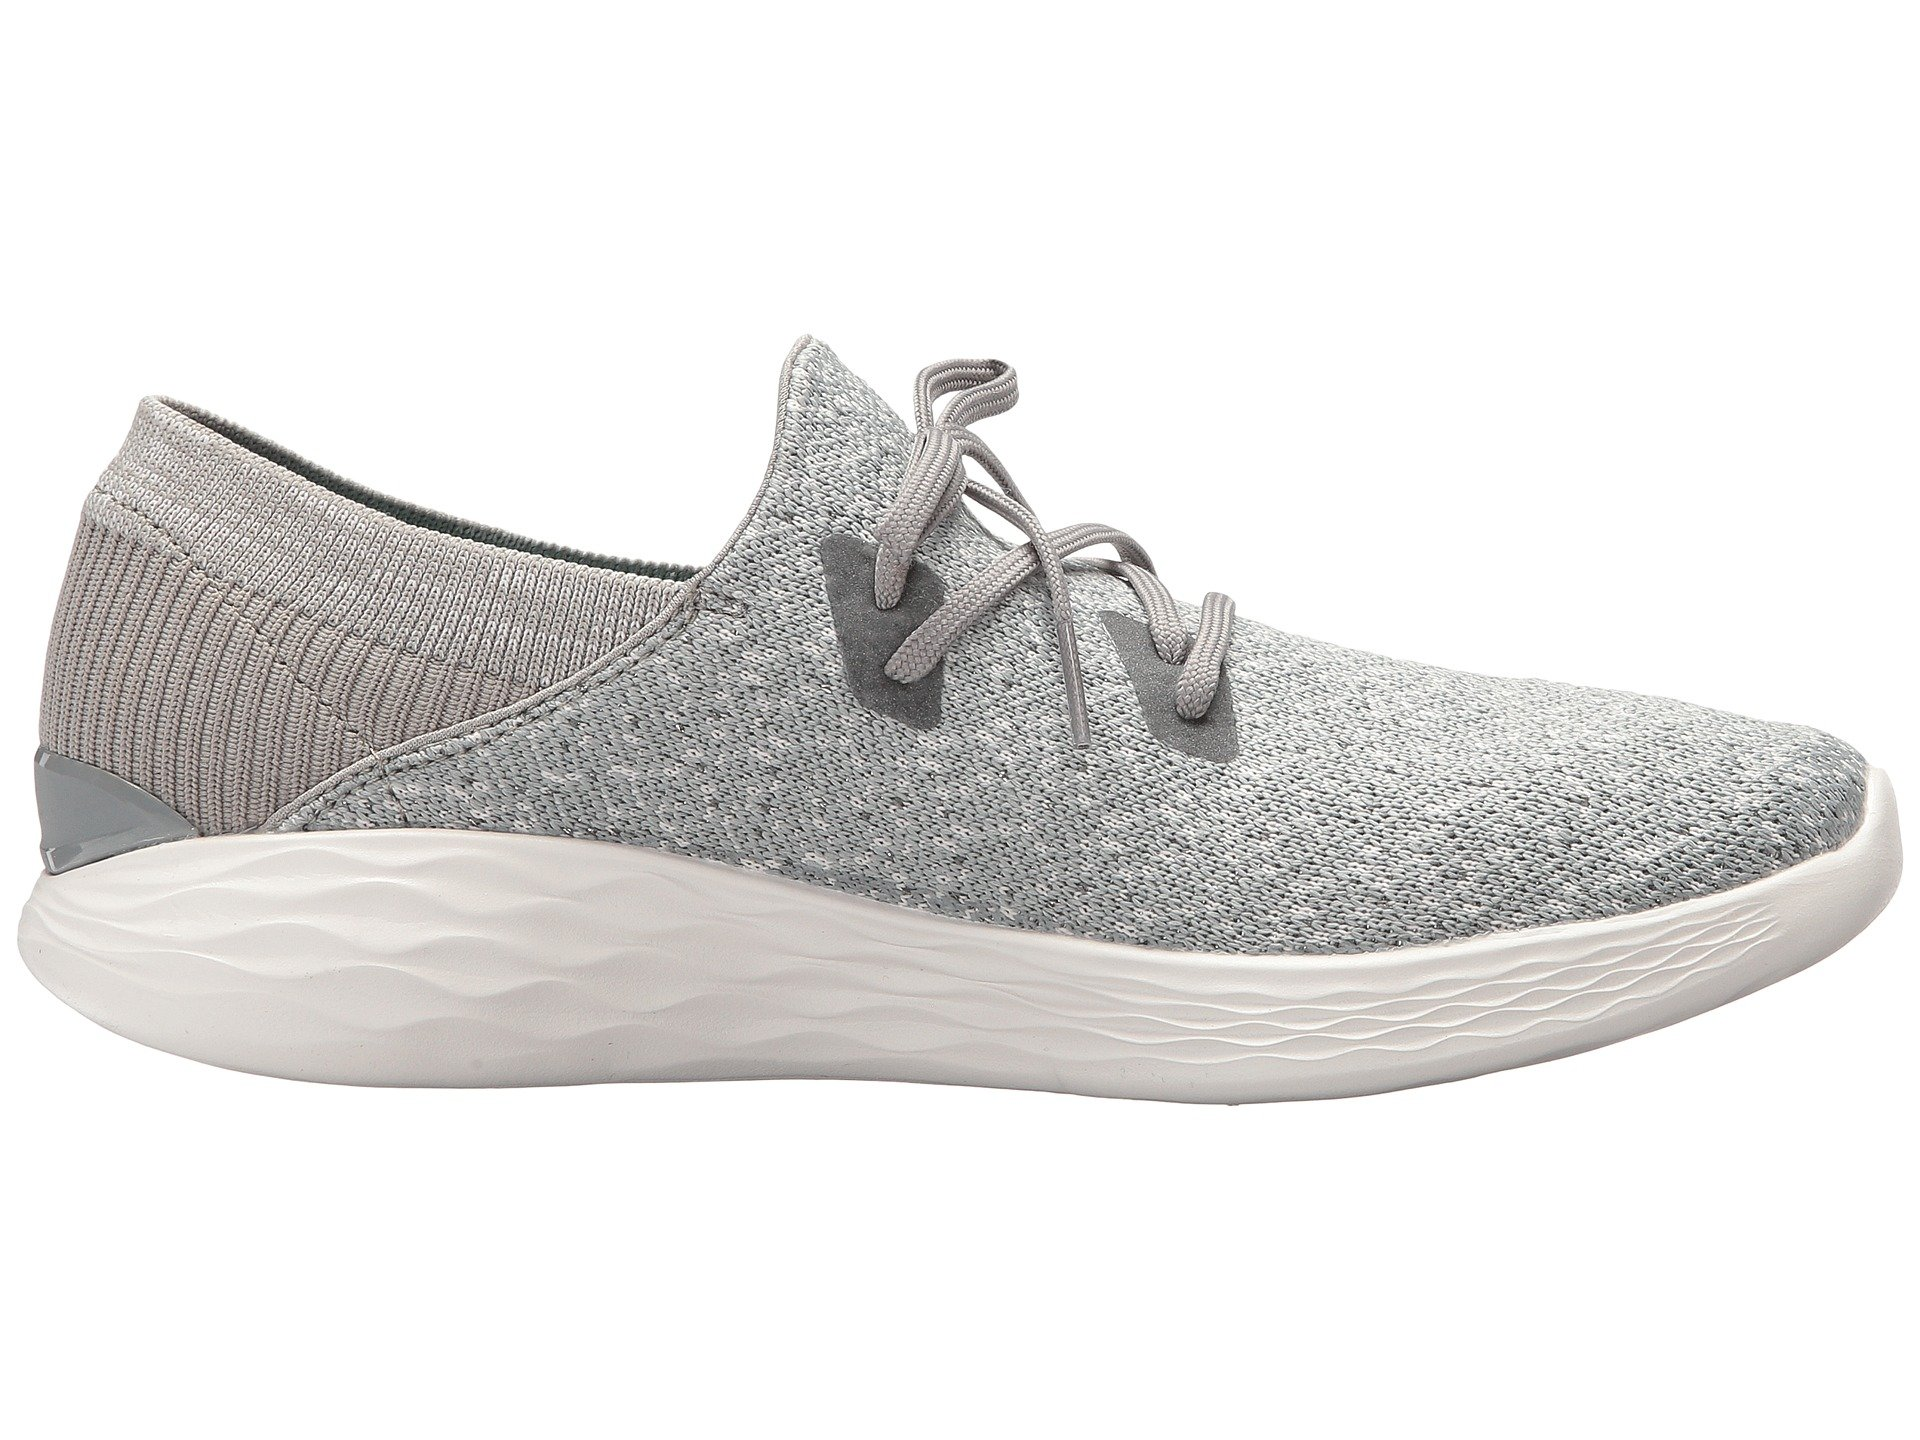 Skechers Performance Skechers Performance You Exhale You Exhale You Performance Gray Gray Exhale Gray Skechers BwvpxWqrzB